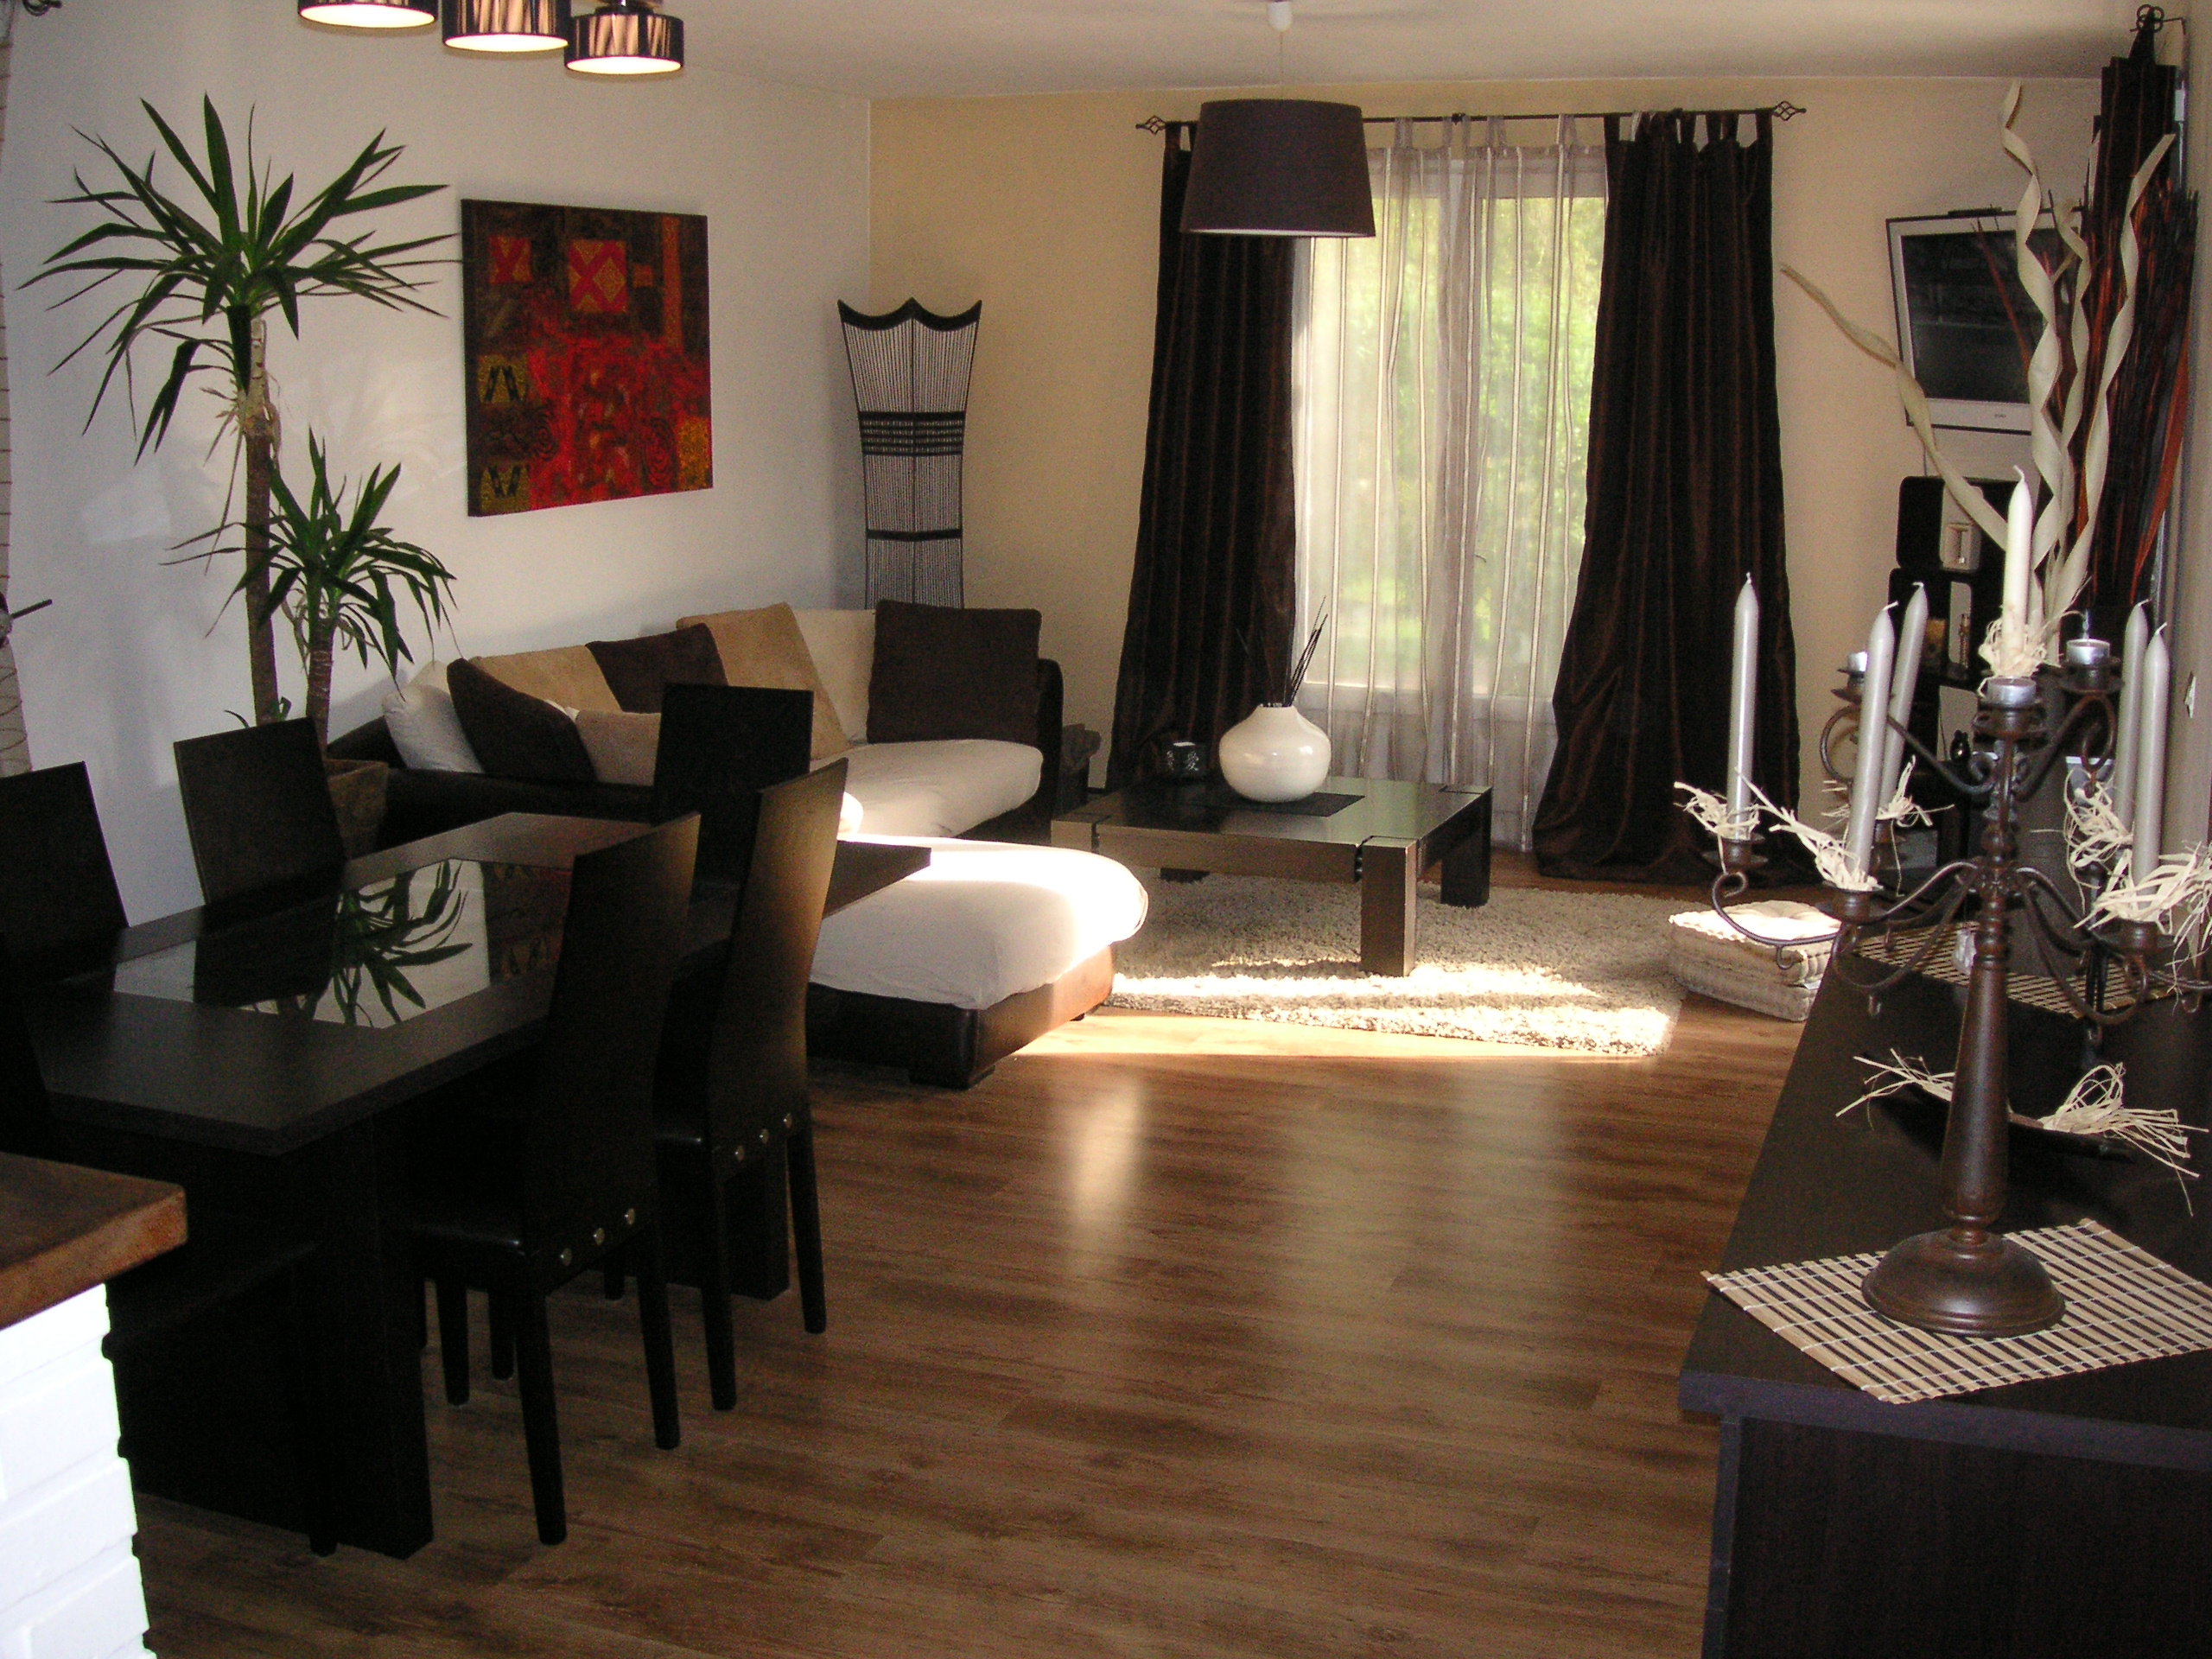 Conseil d co divers r alisations en picardie home staging for Style de salon moderne